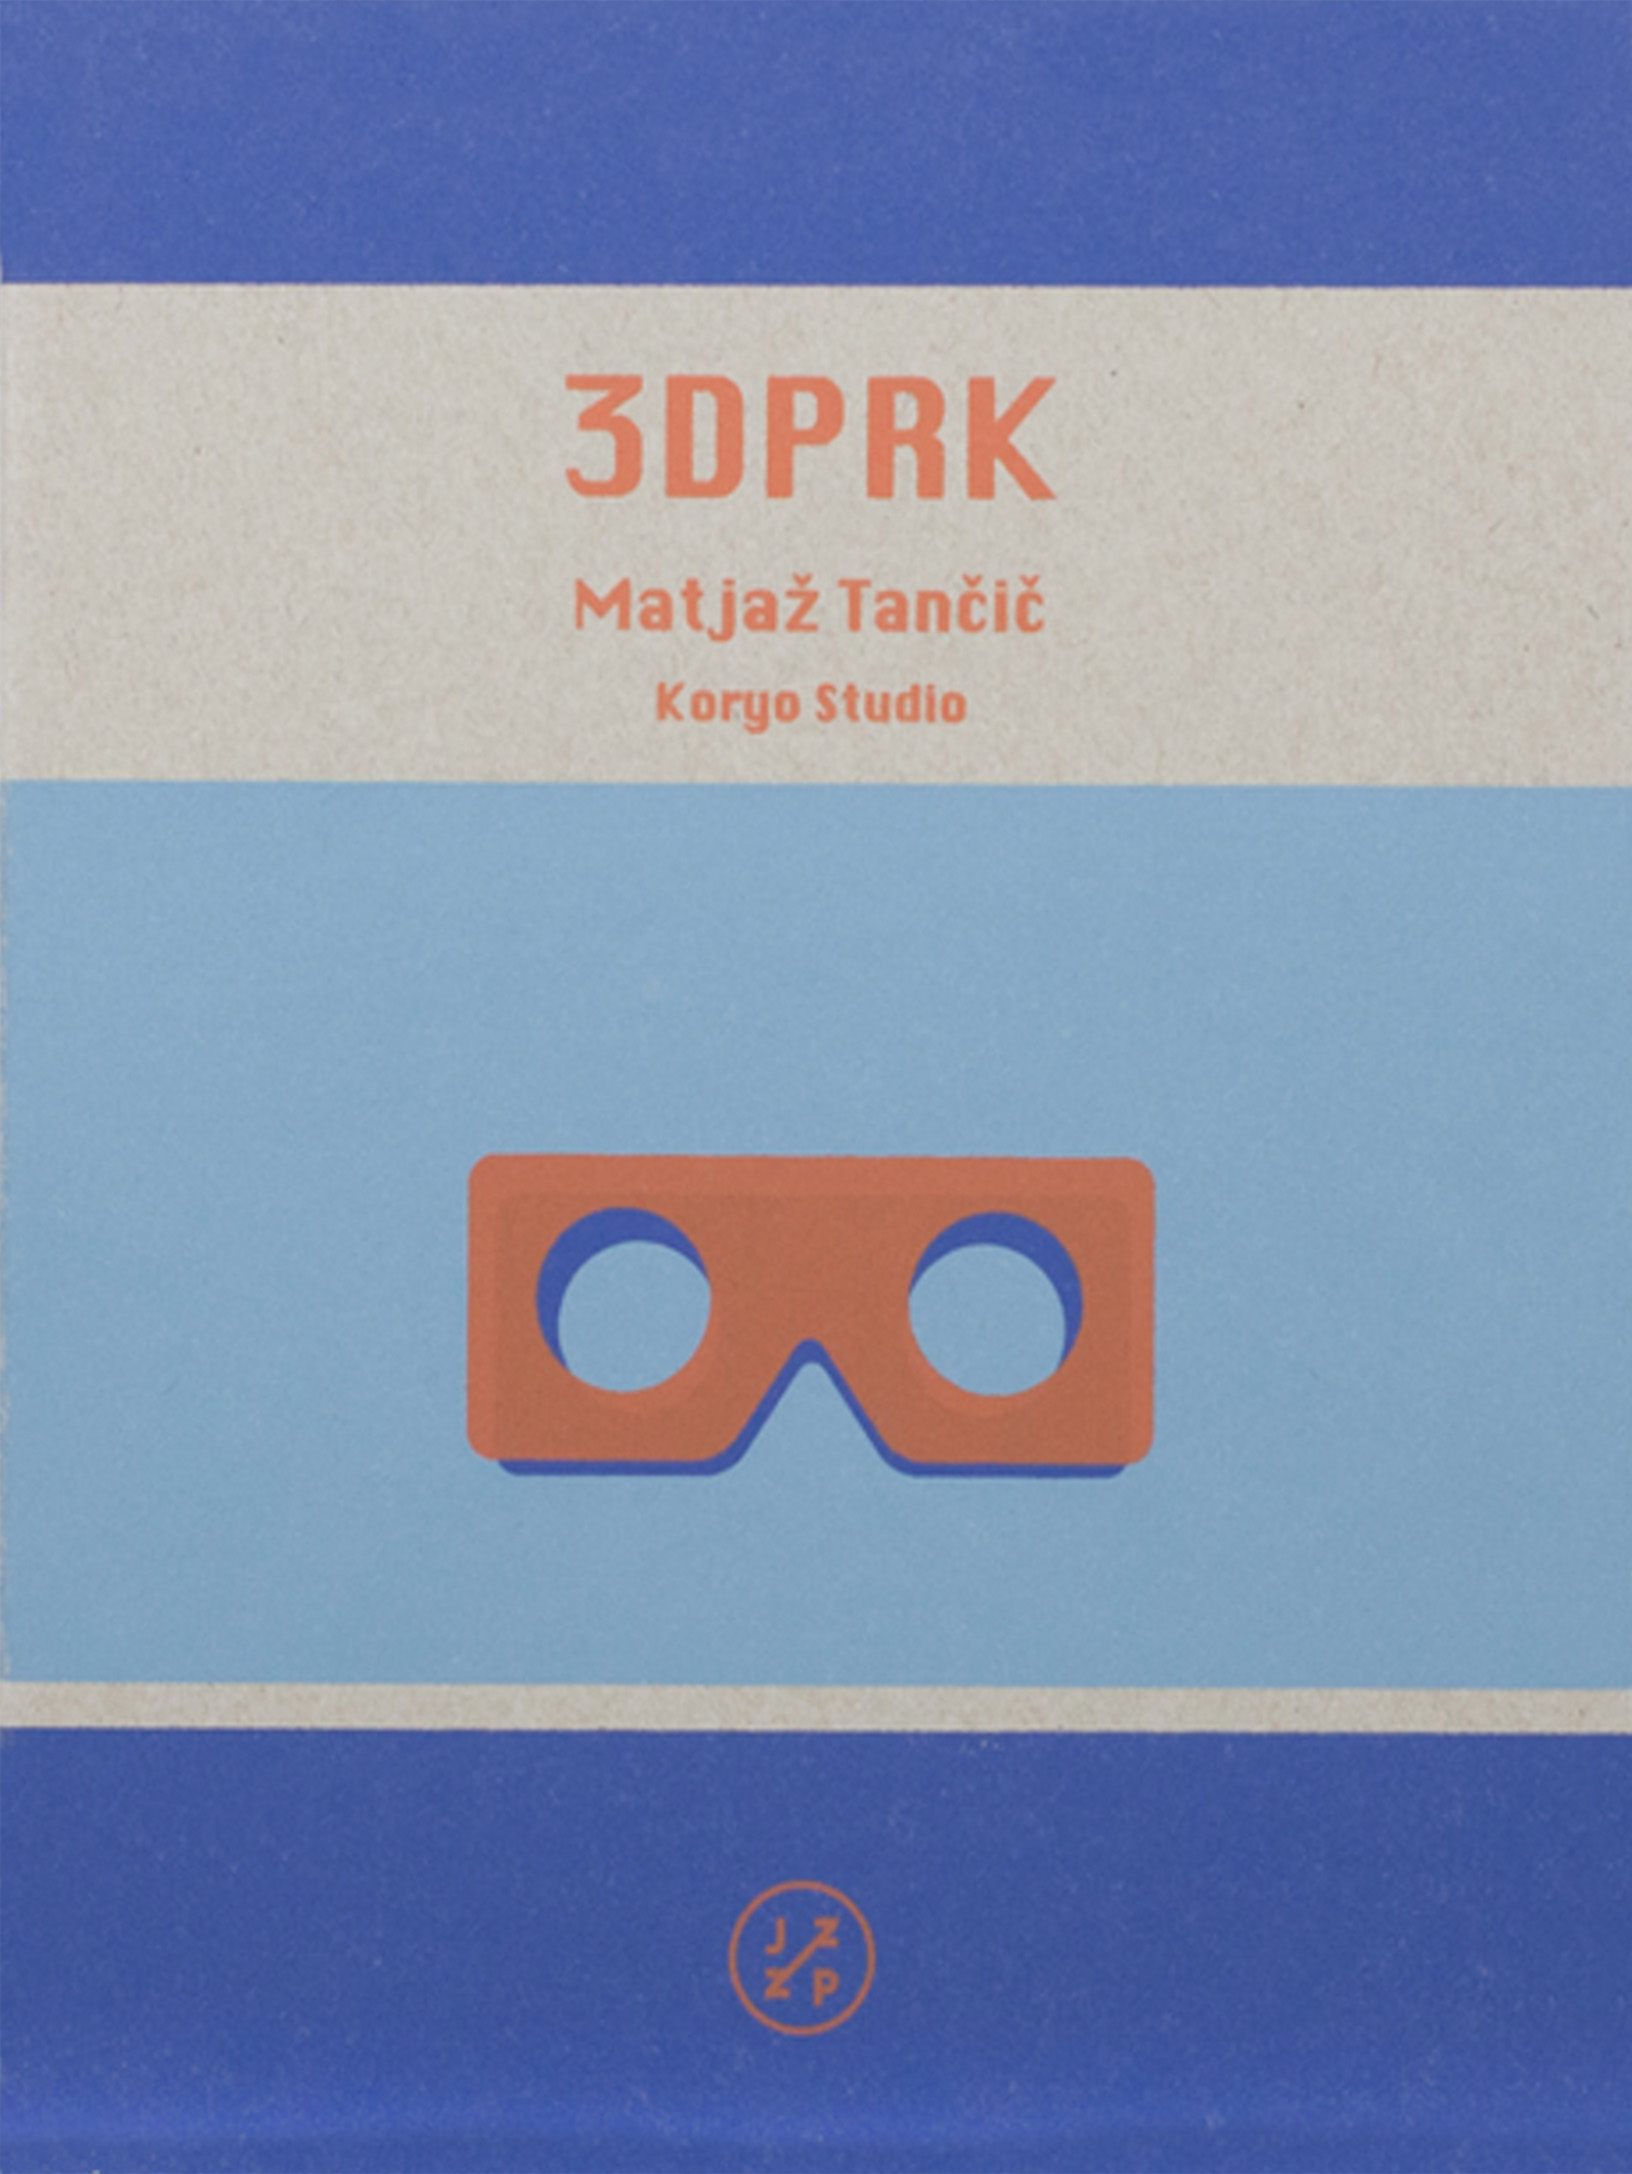 3DPRK cover